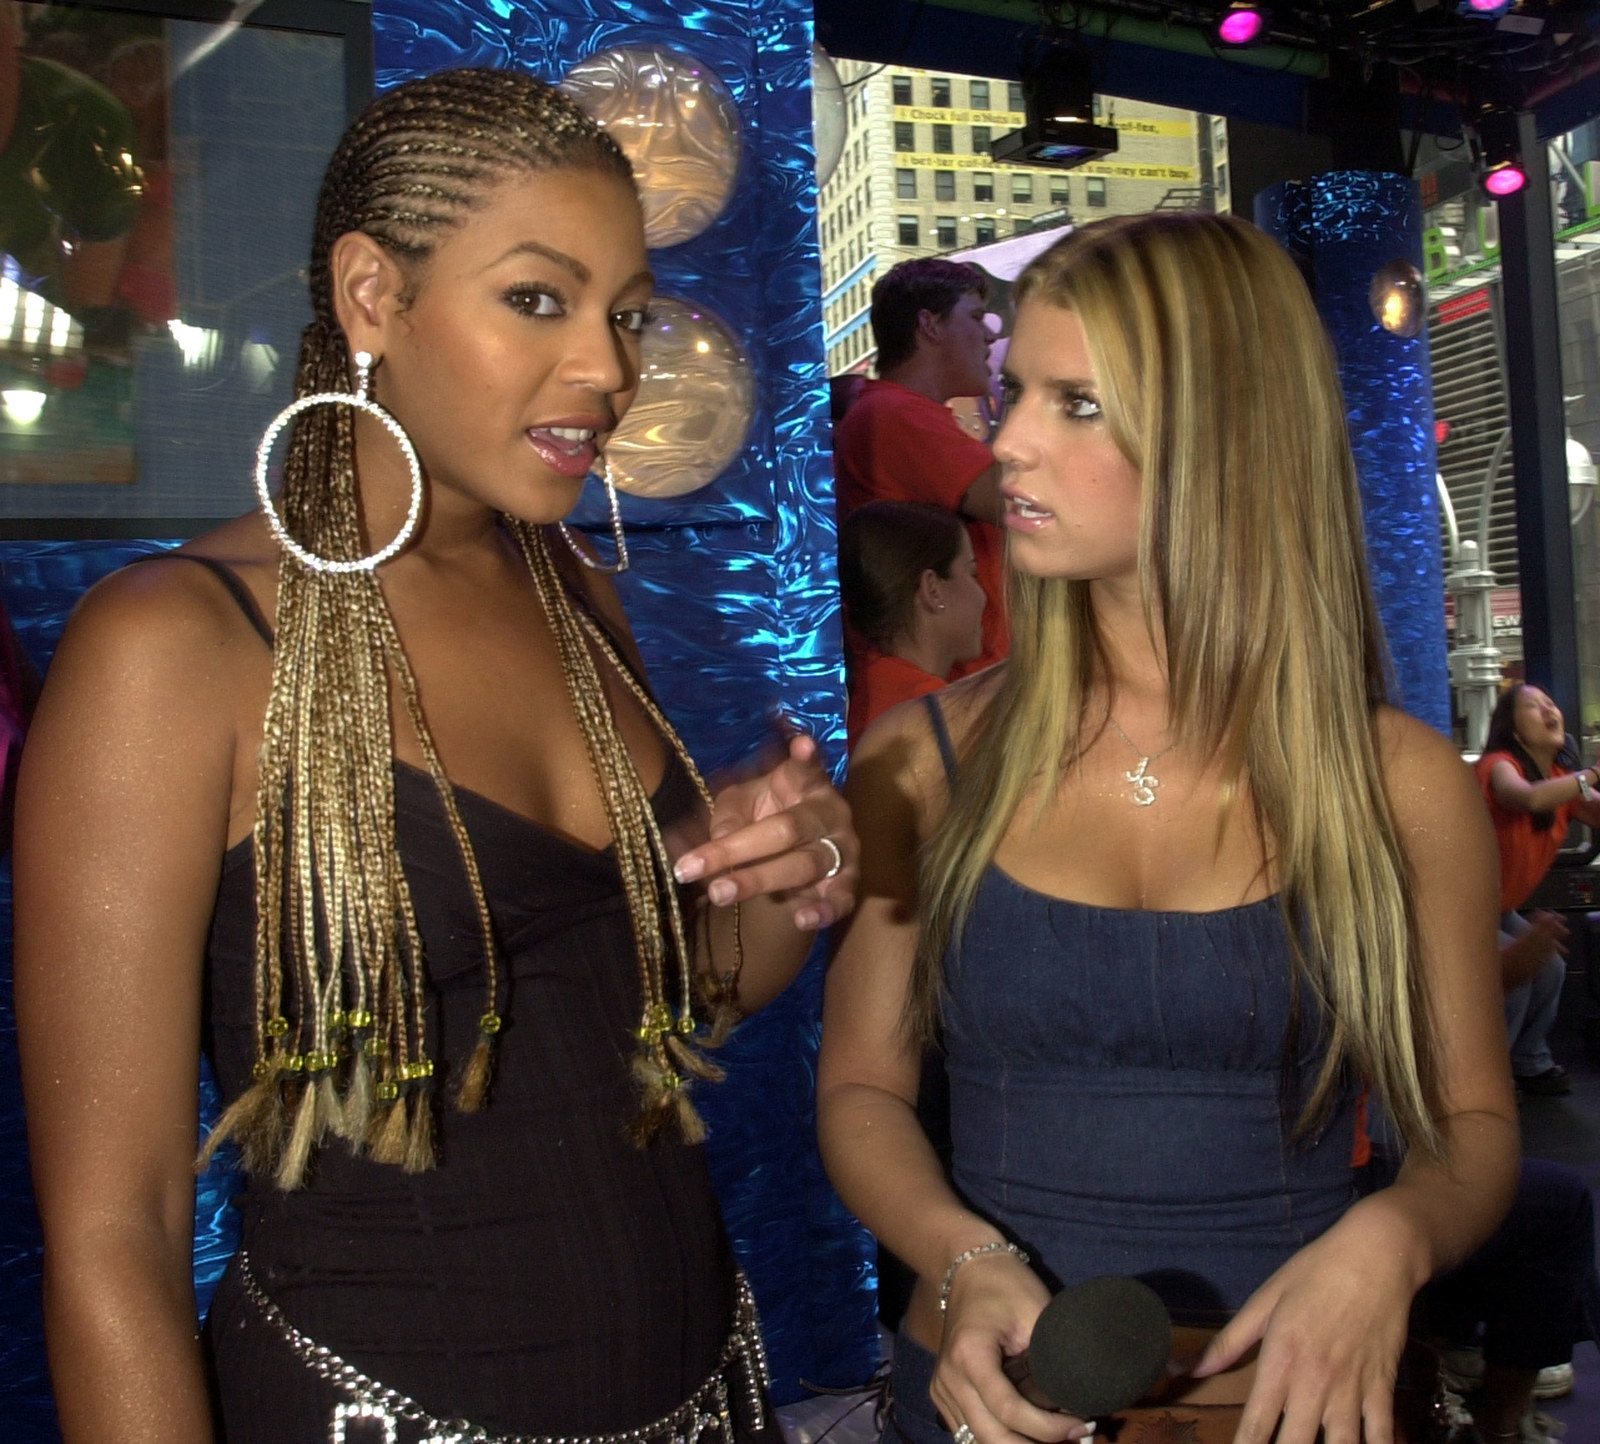 Jessica Simpson and Beyoncé in the same room, talking to each other, as peers.